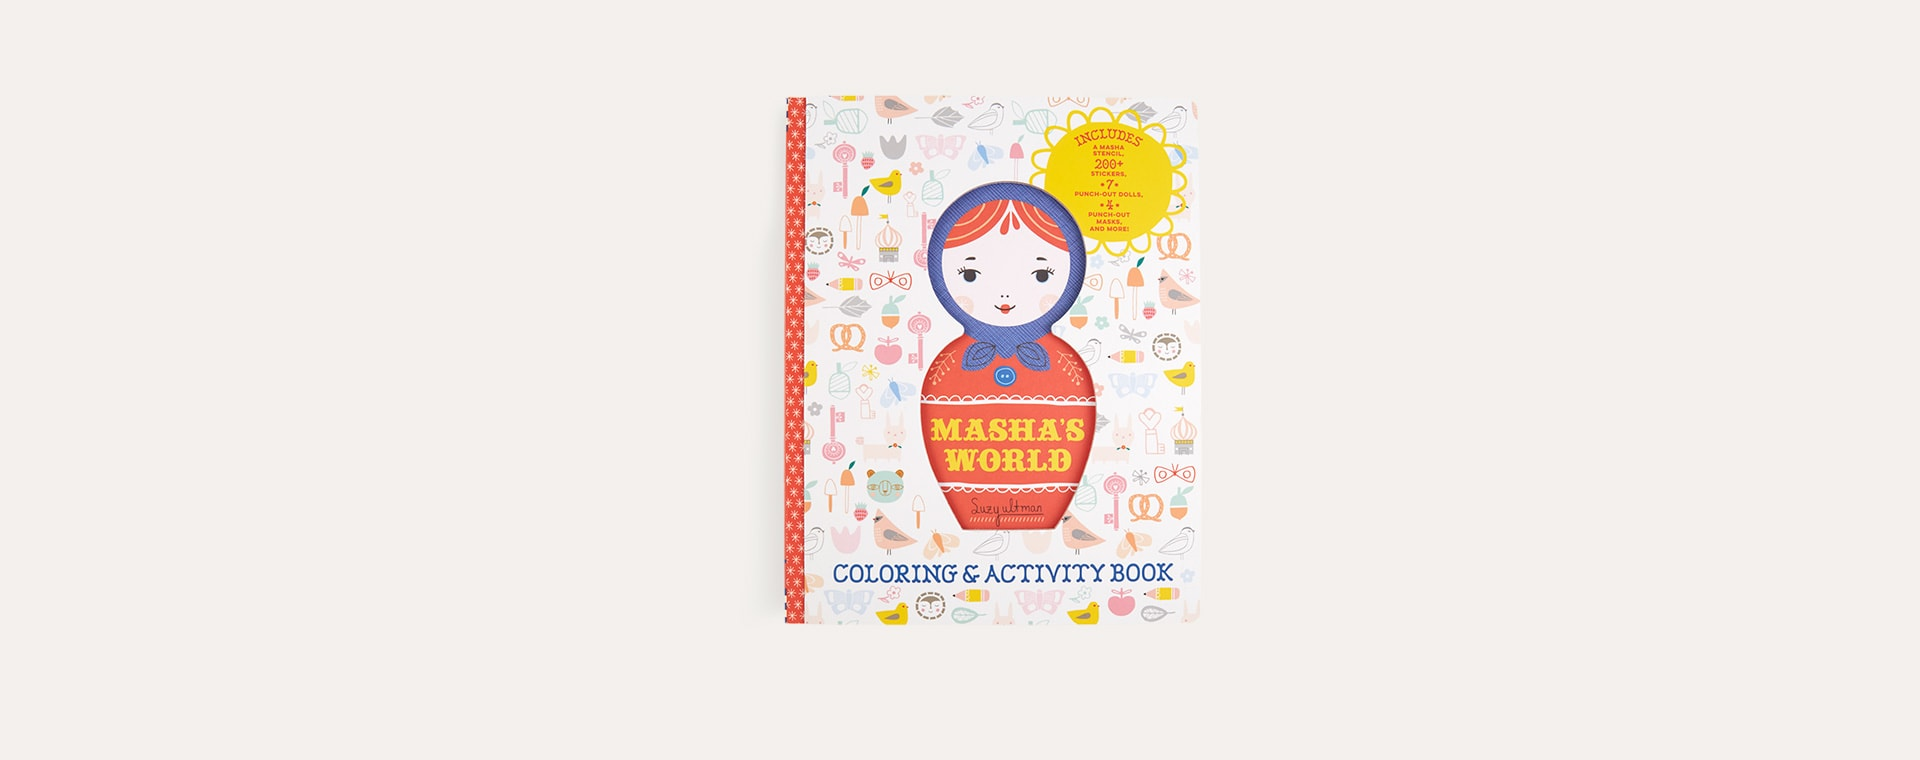 Multi Abrams & Chronicle Books Masha World: Colouring & Activity Book